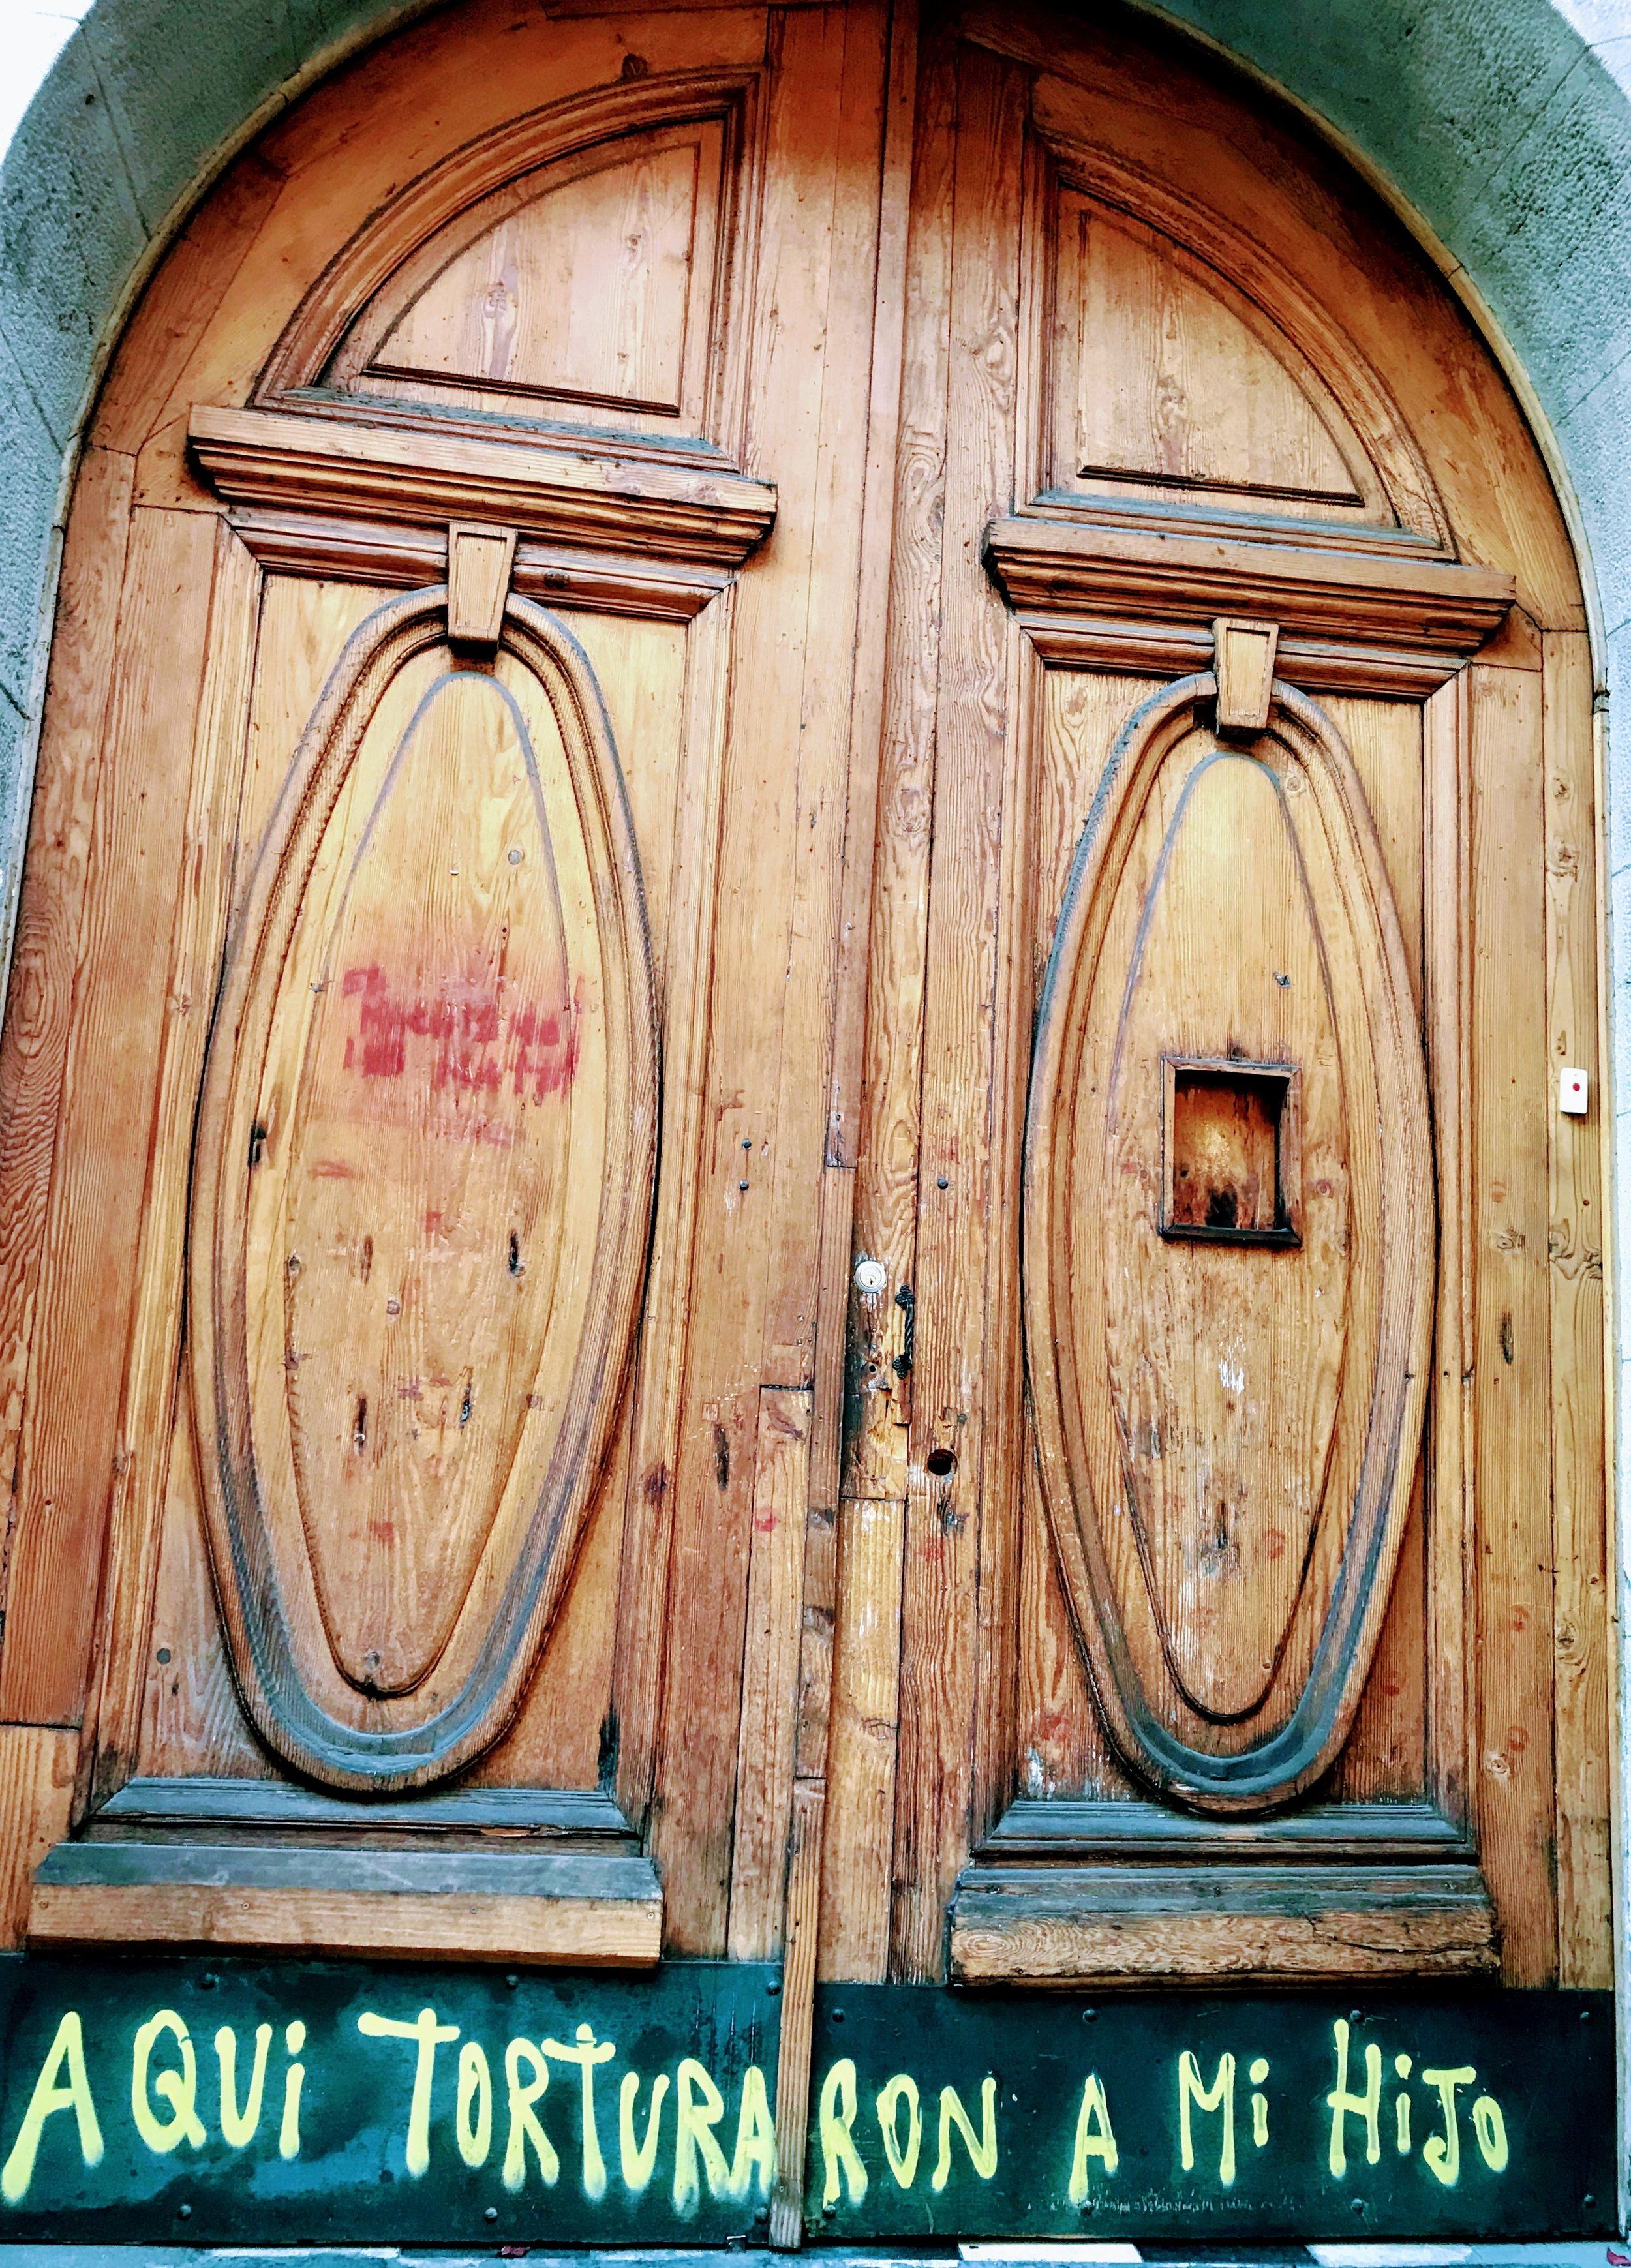 Located at Londres 38 in the Paris-Londres neighborhood, this was one of Pinochet's torture chambers.